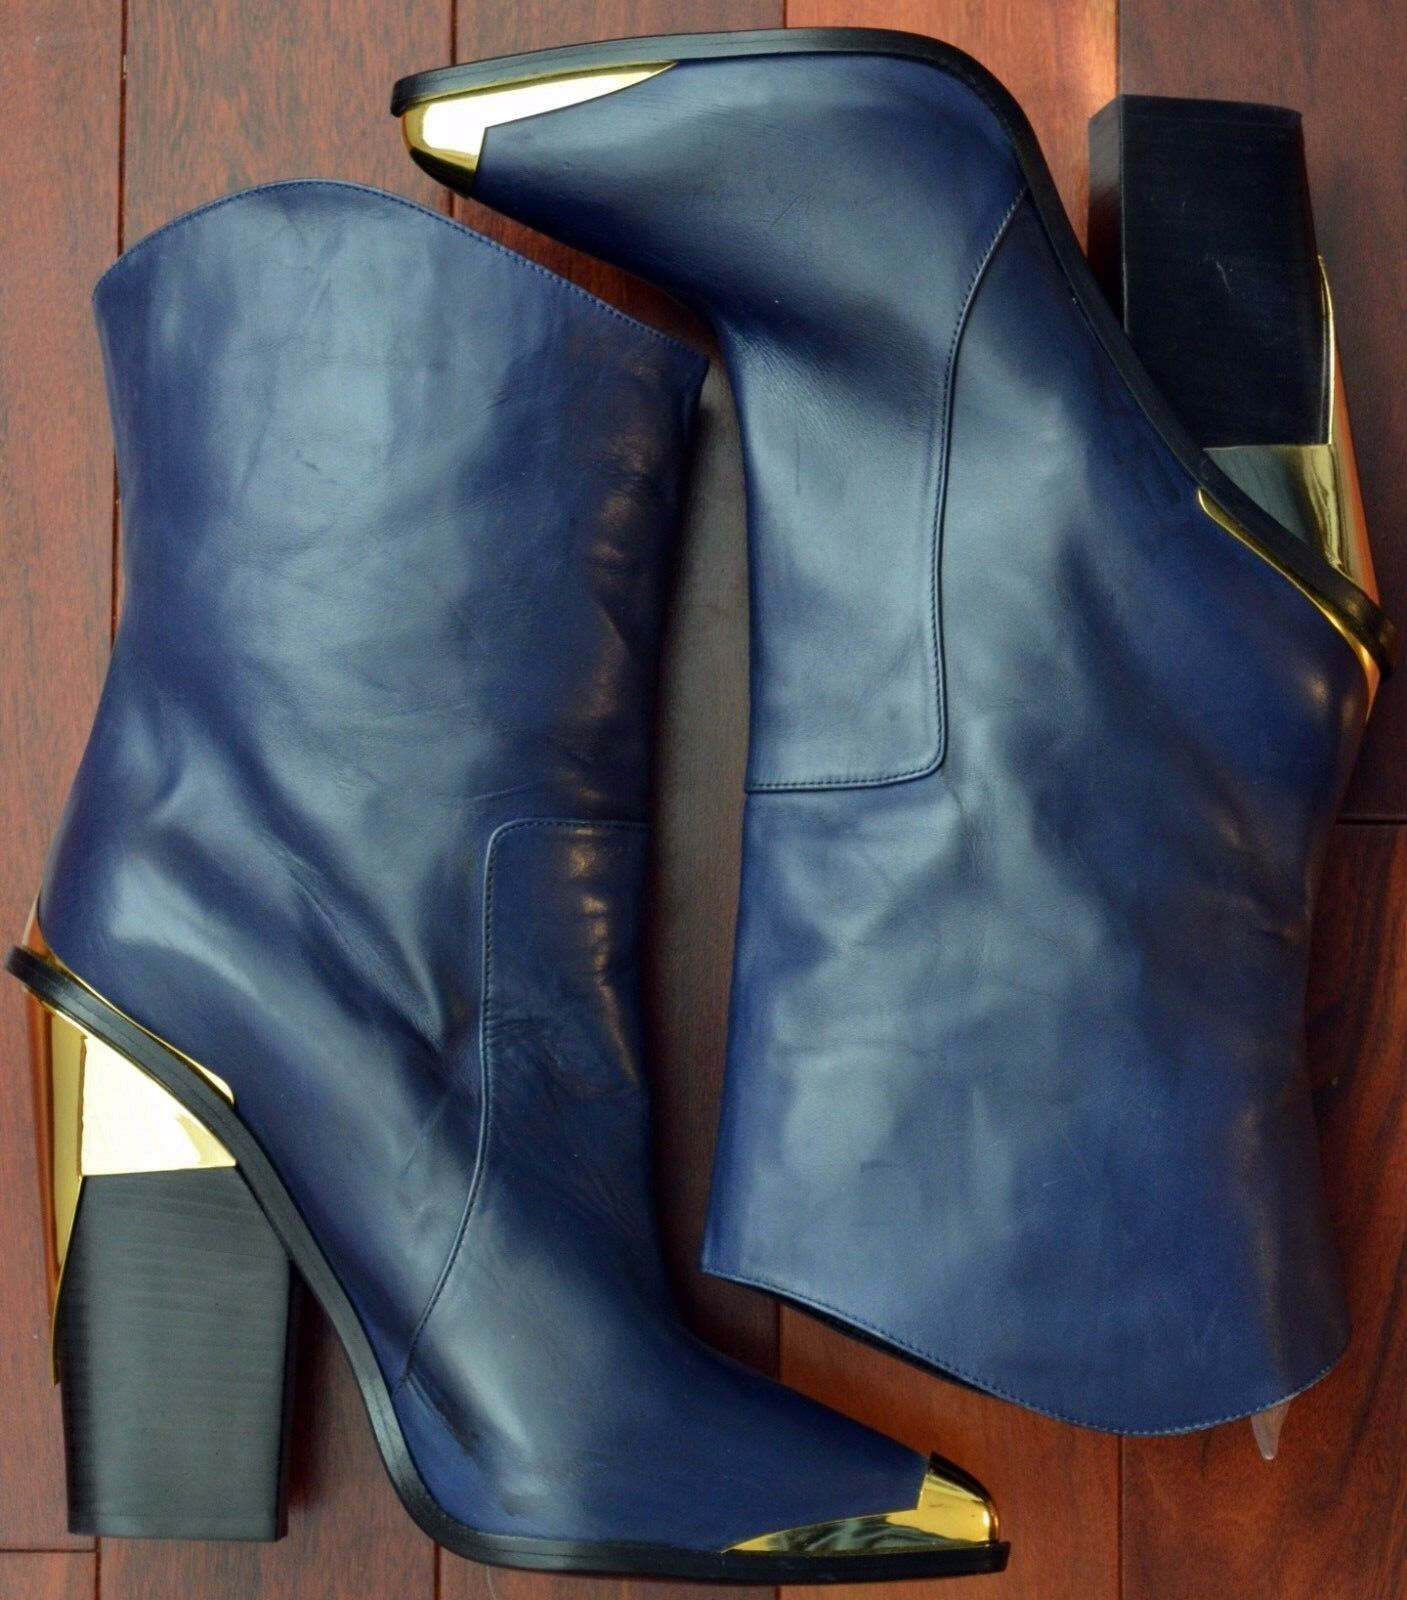 ULTRA-RARE Versace Italy Dark Navy Blue Leather w/ Gold Metal Dress Boots 40.5